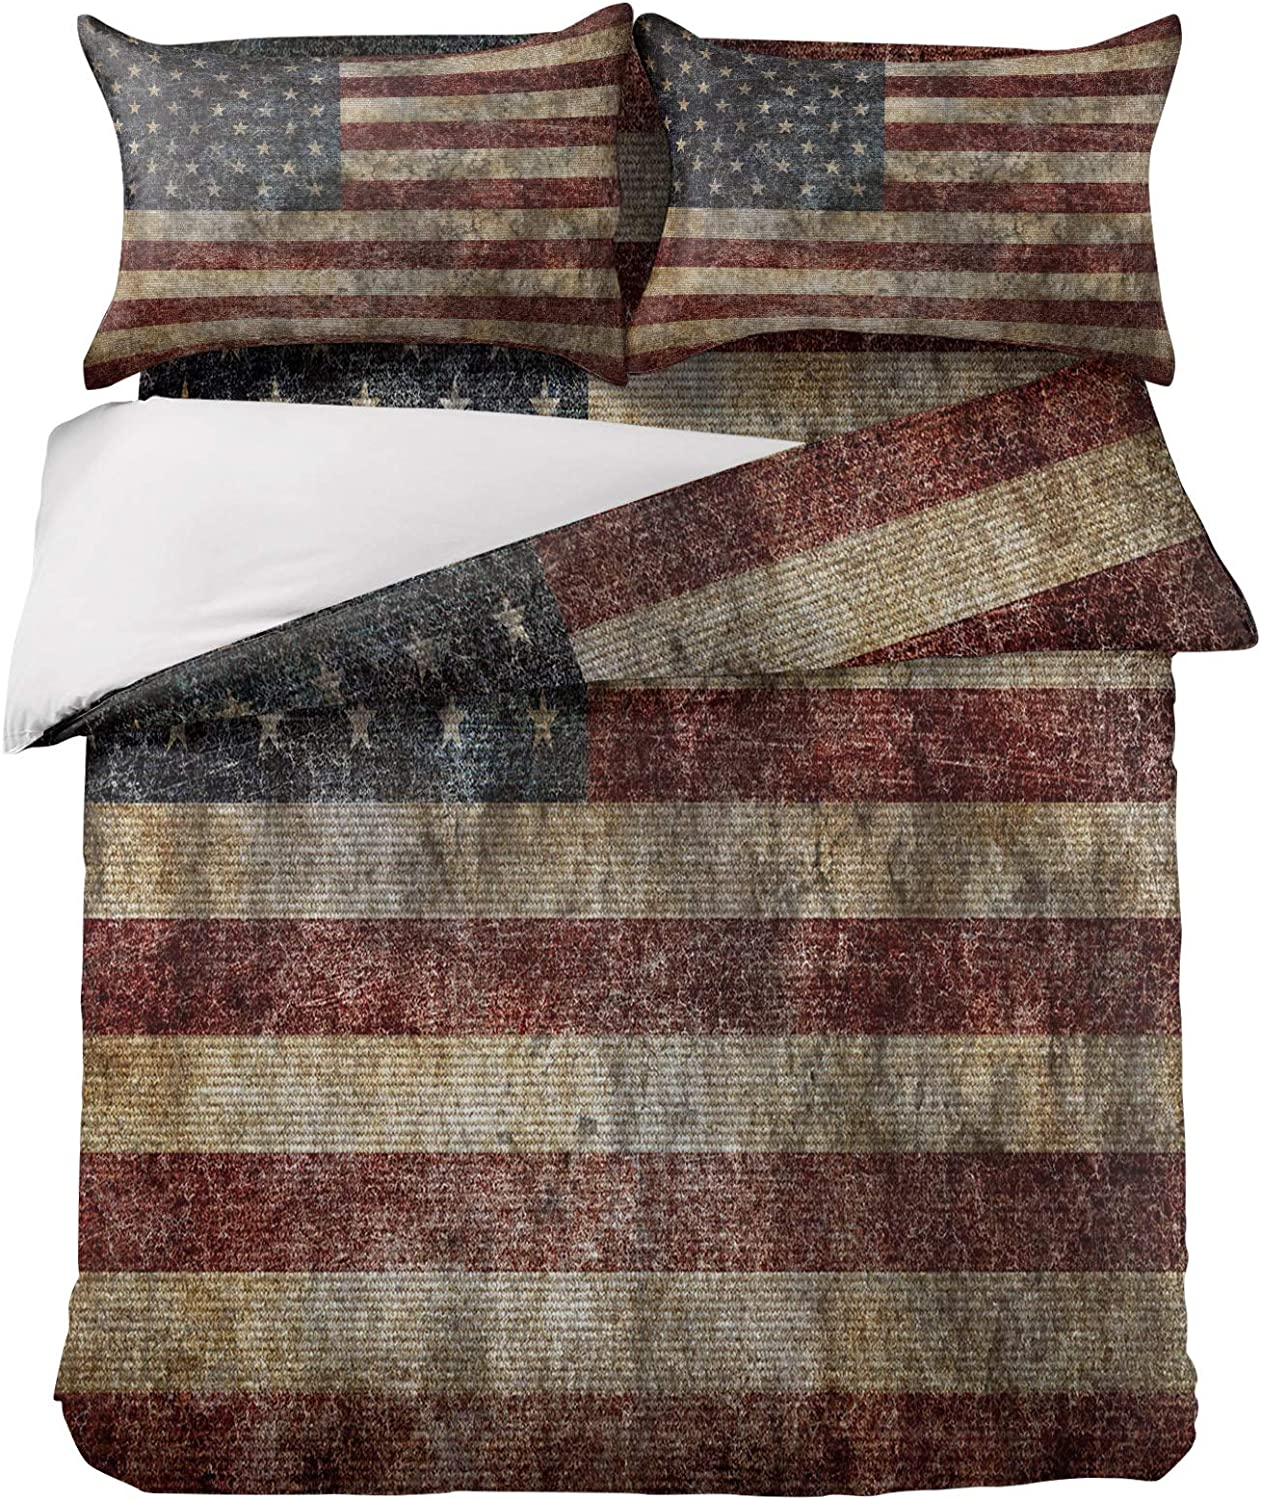 Queen Duvet Cover Set 4 Pieces Max 68% OFF Vintage and Stars Purchase Strip American